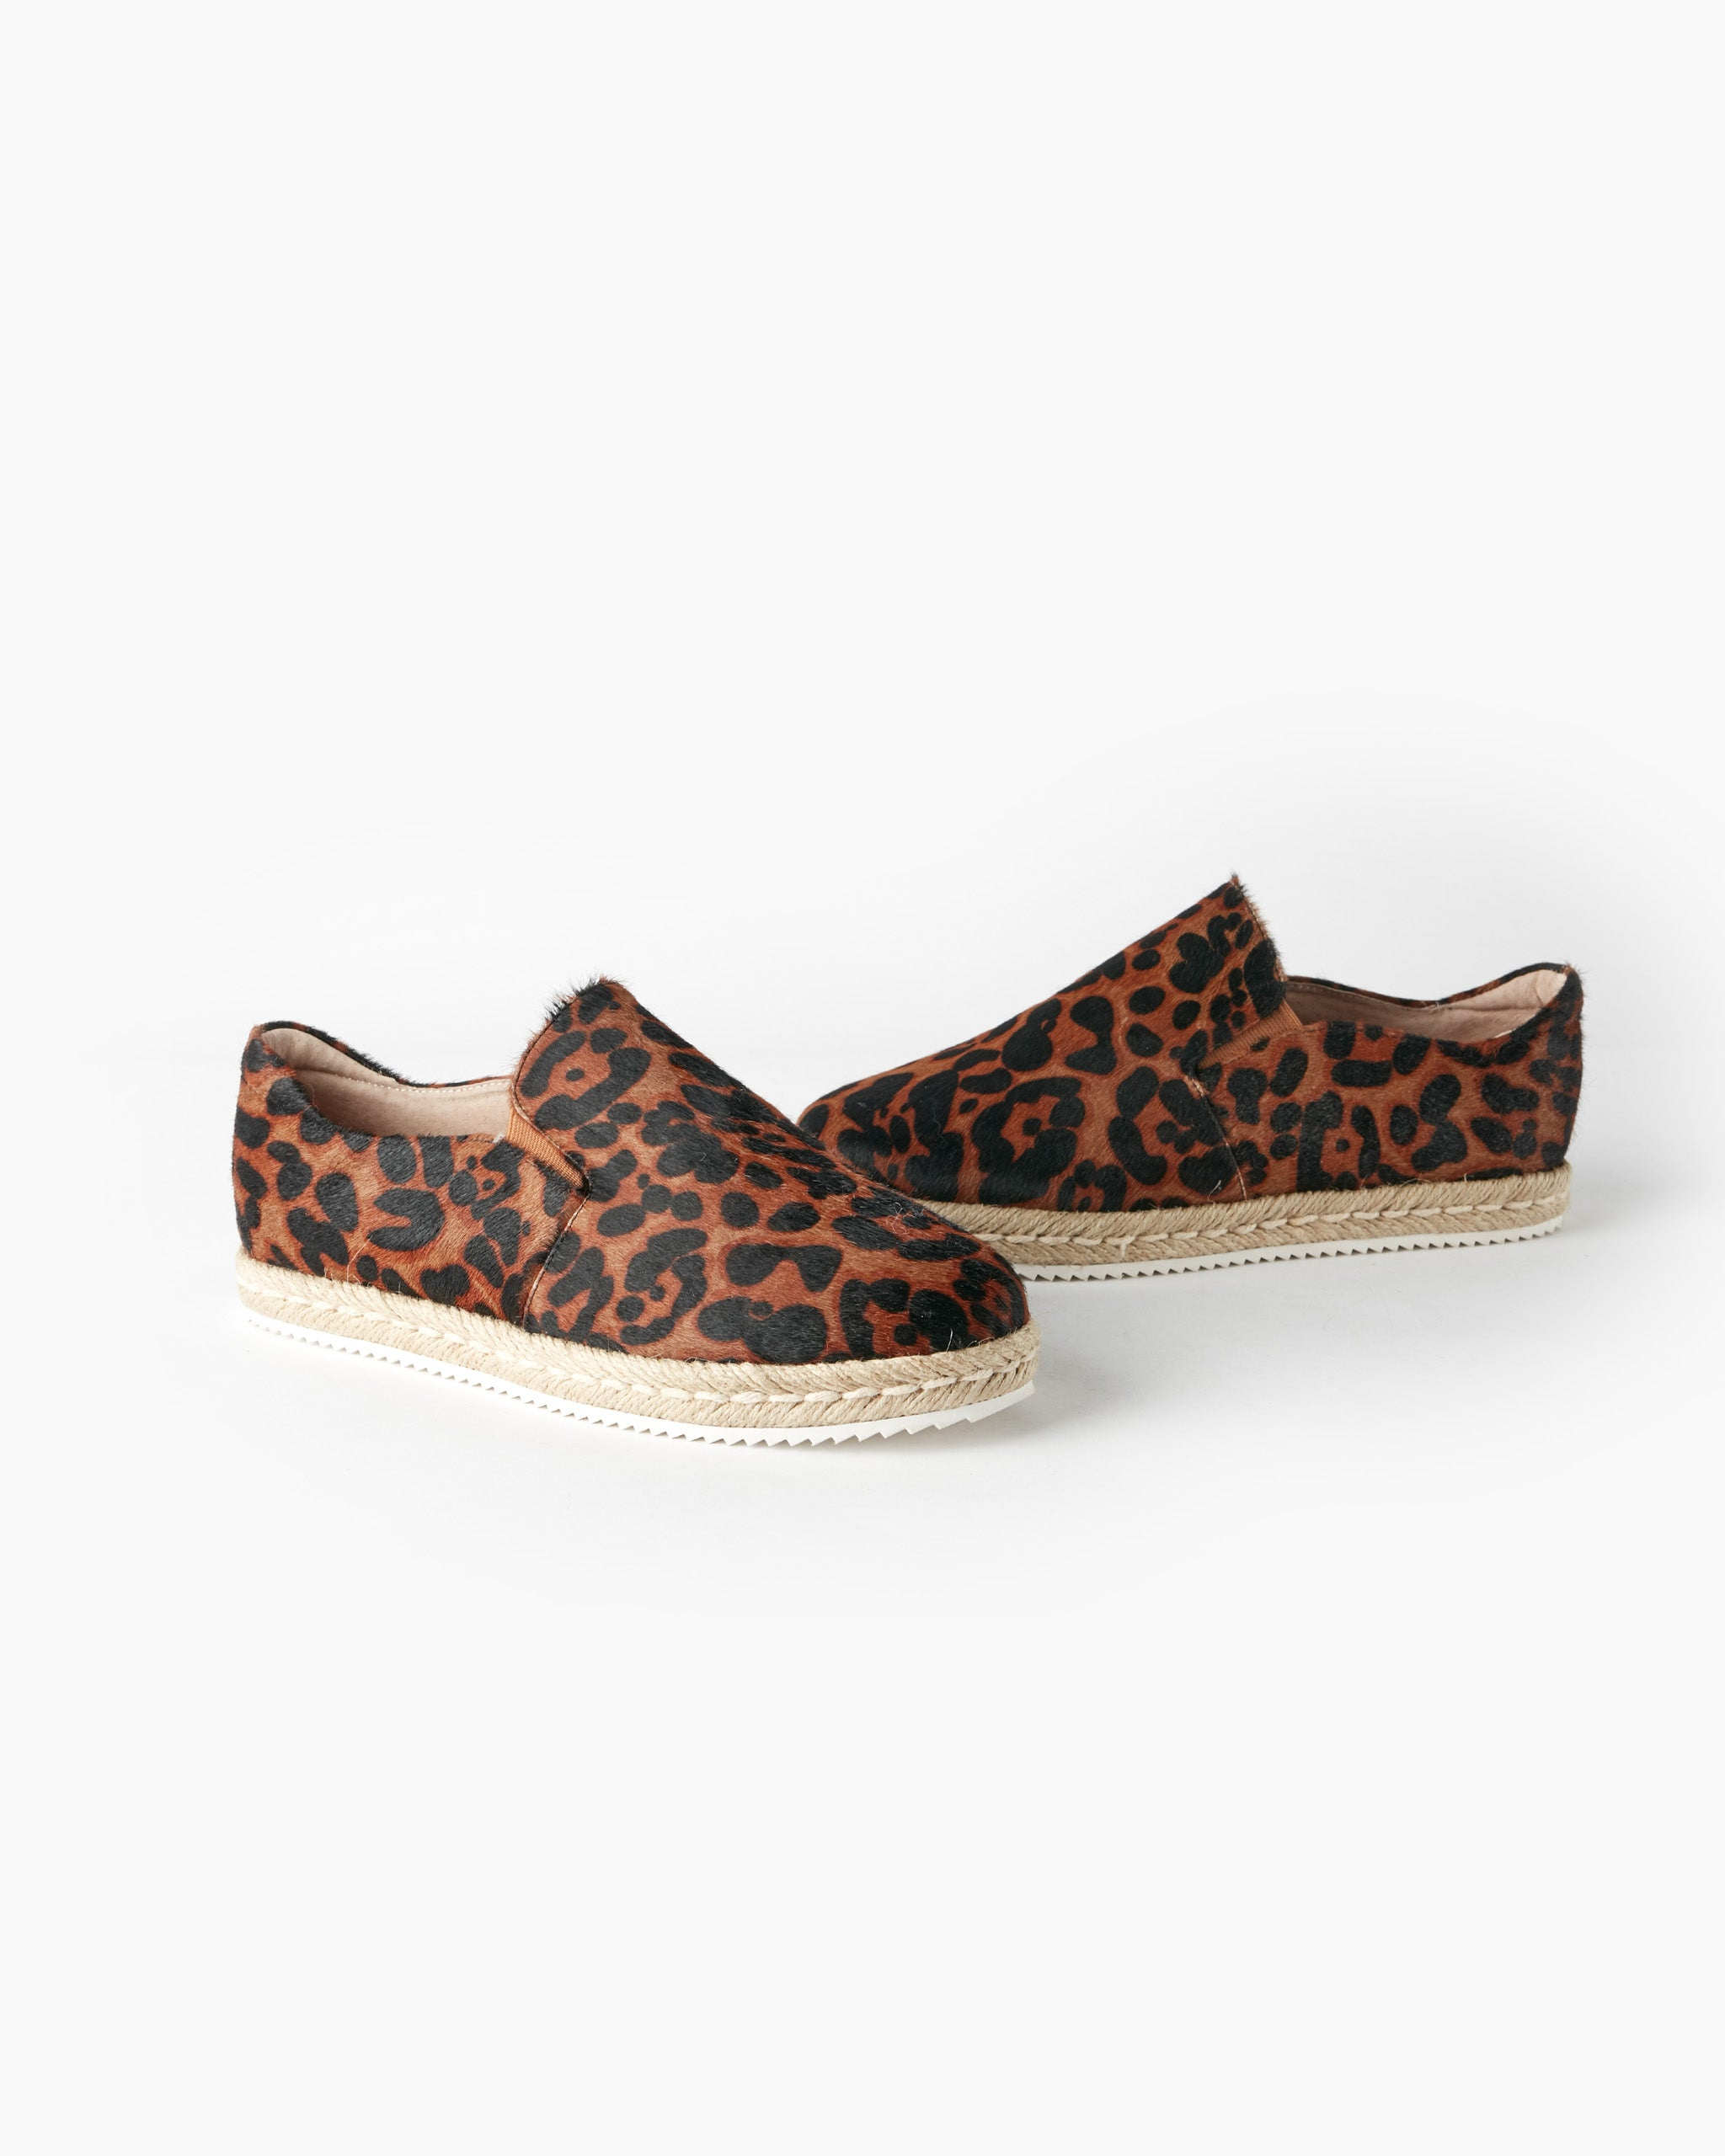 Goldie Leather Espadrille - Chocolate Leopard